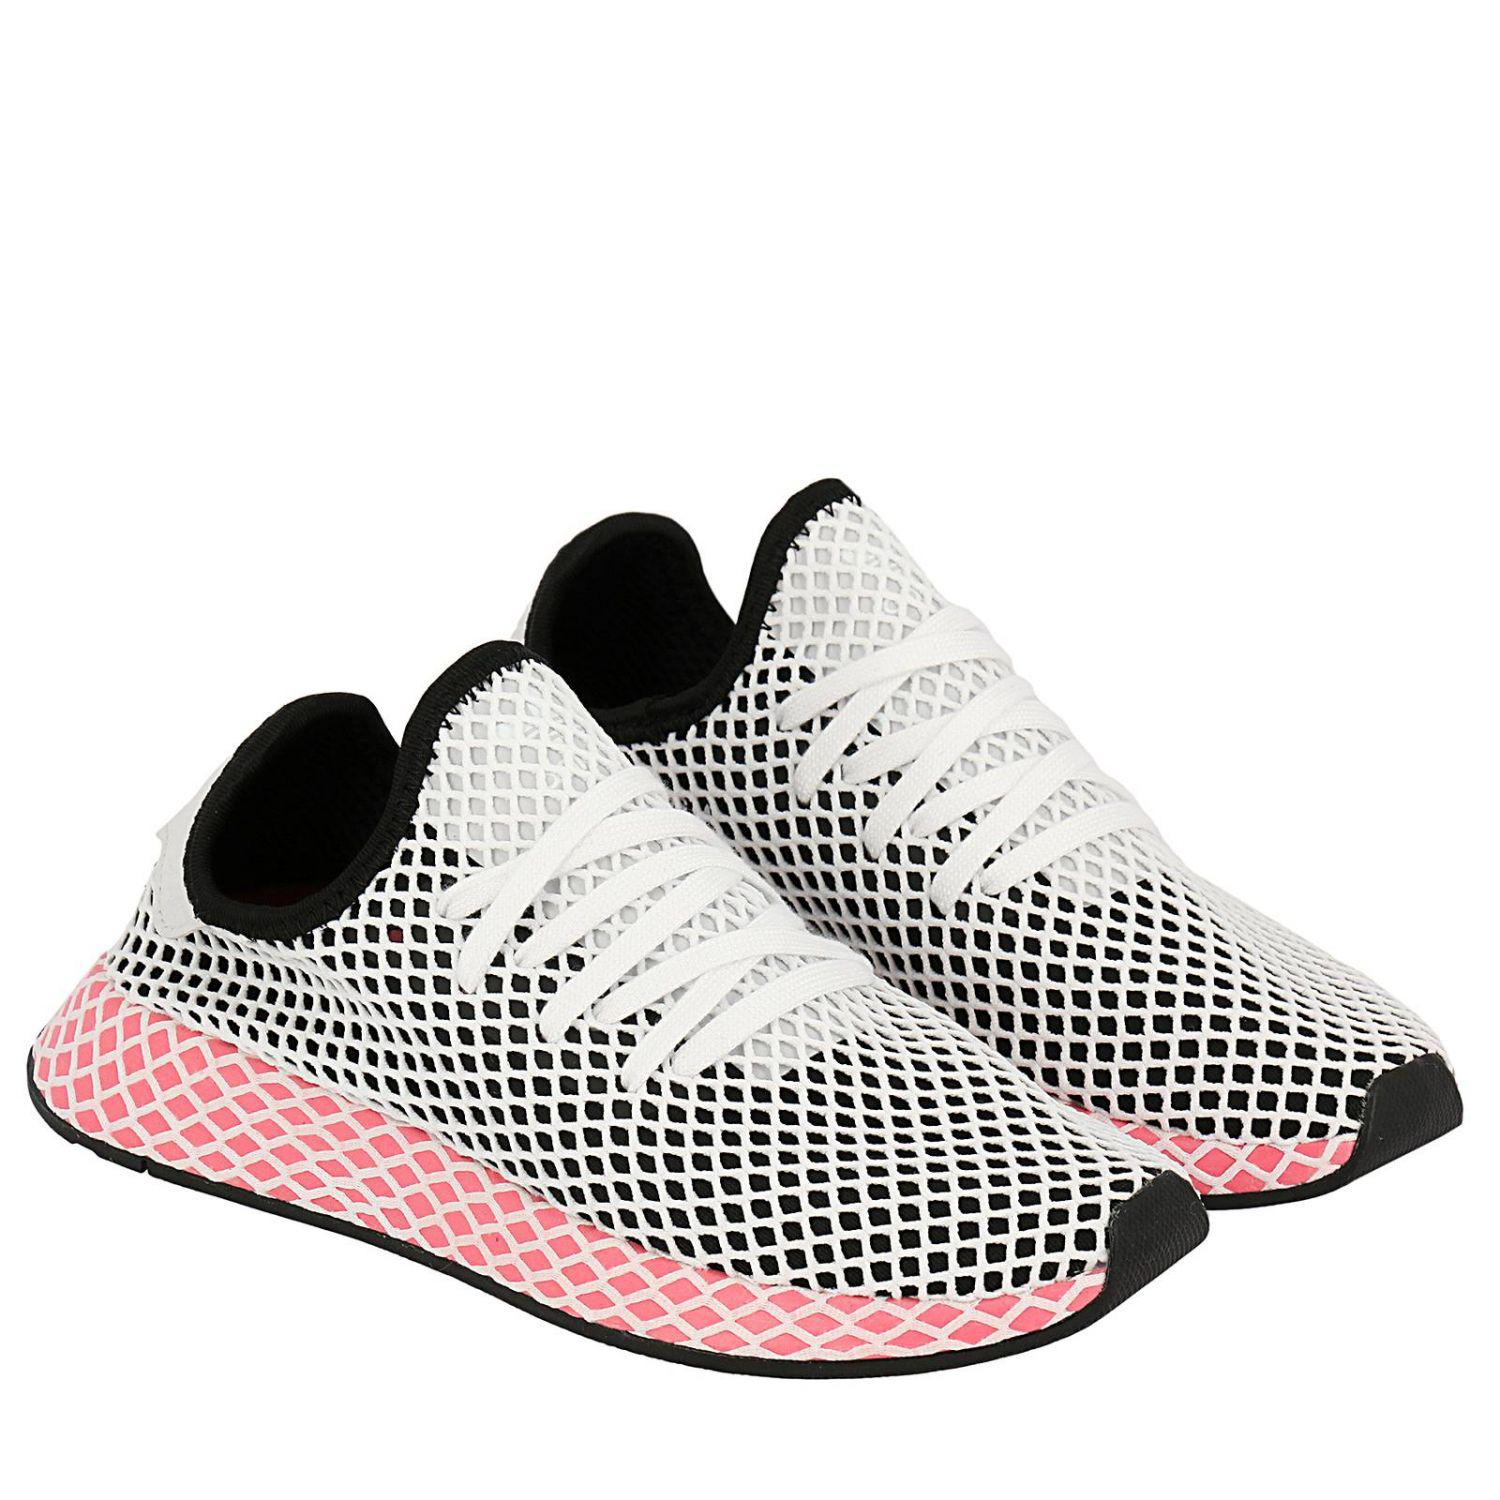 adidas net shoes